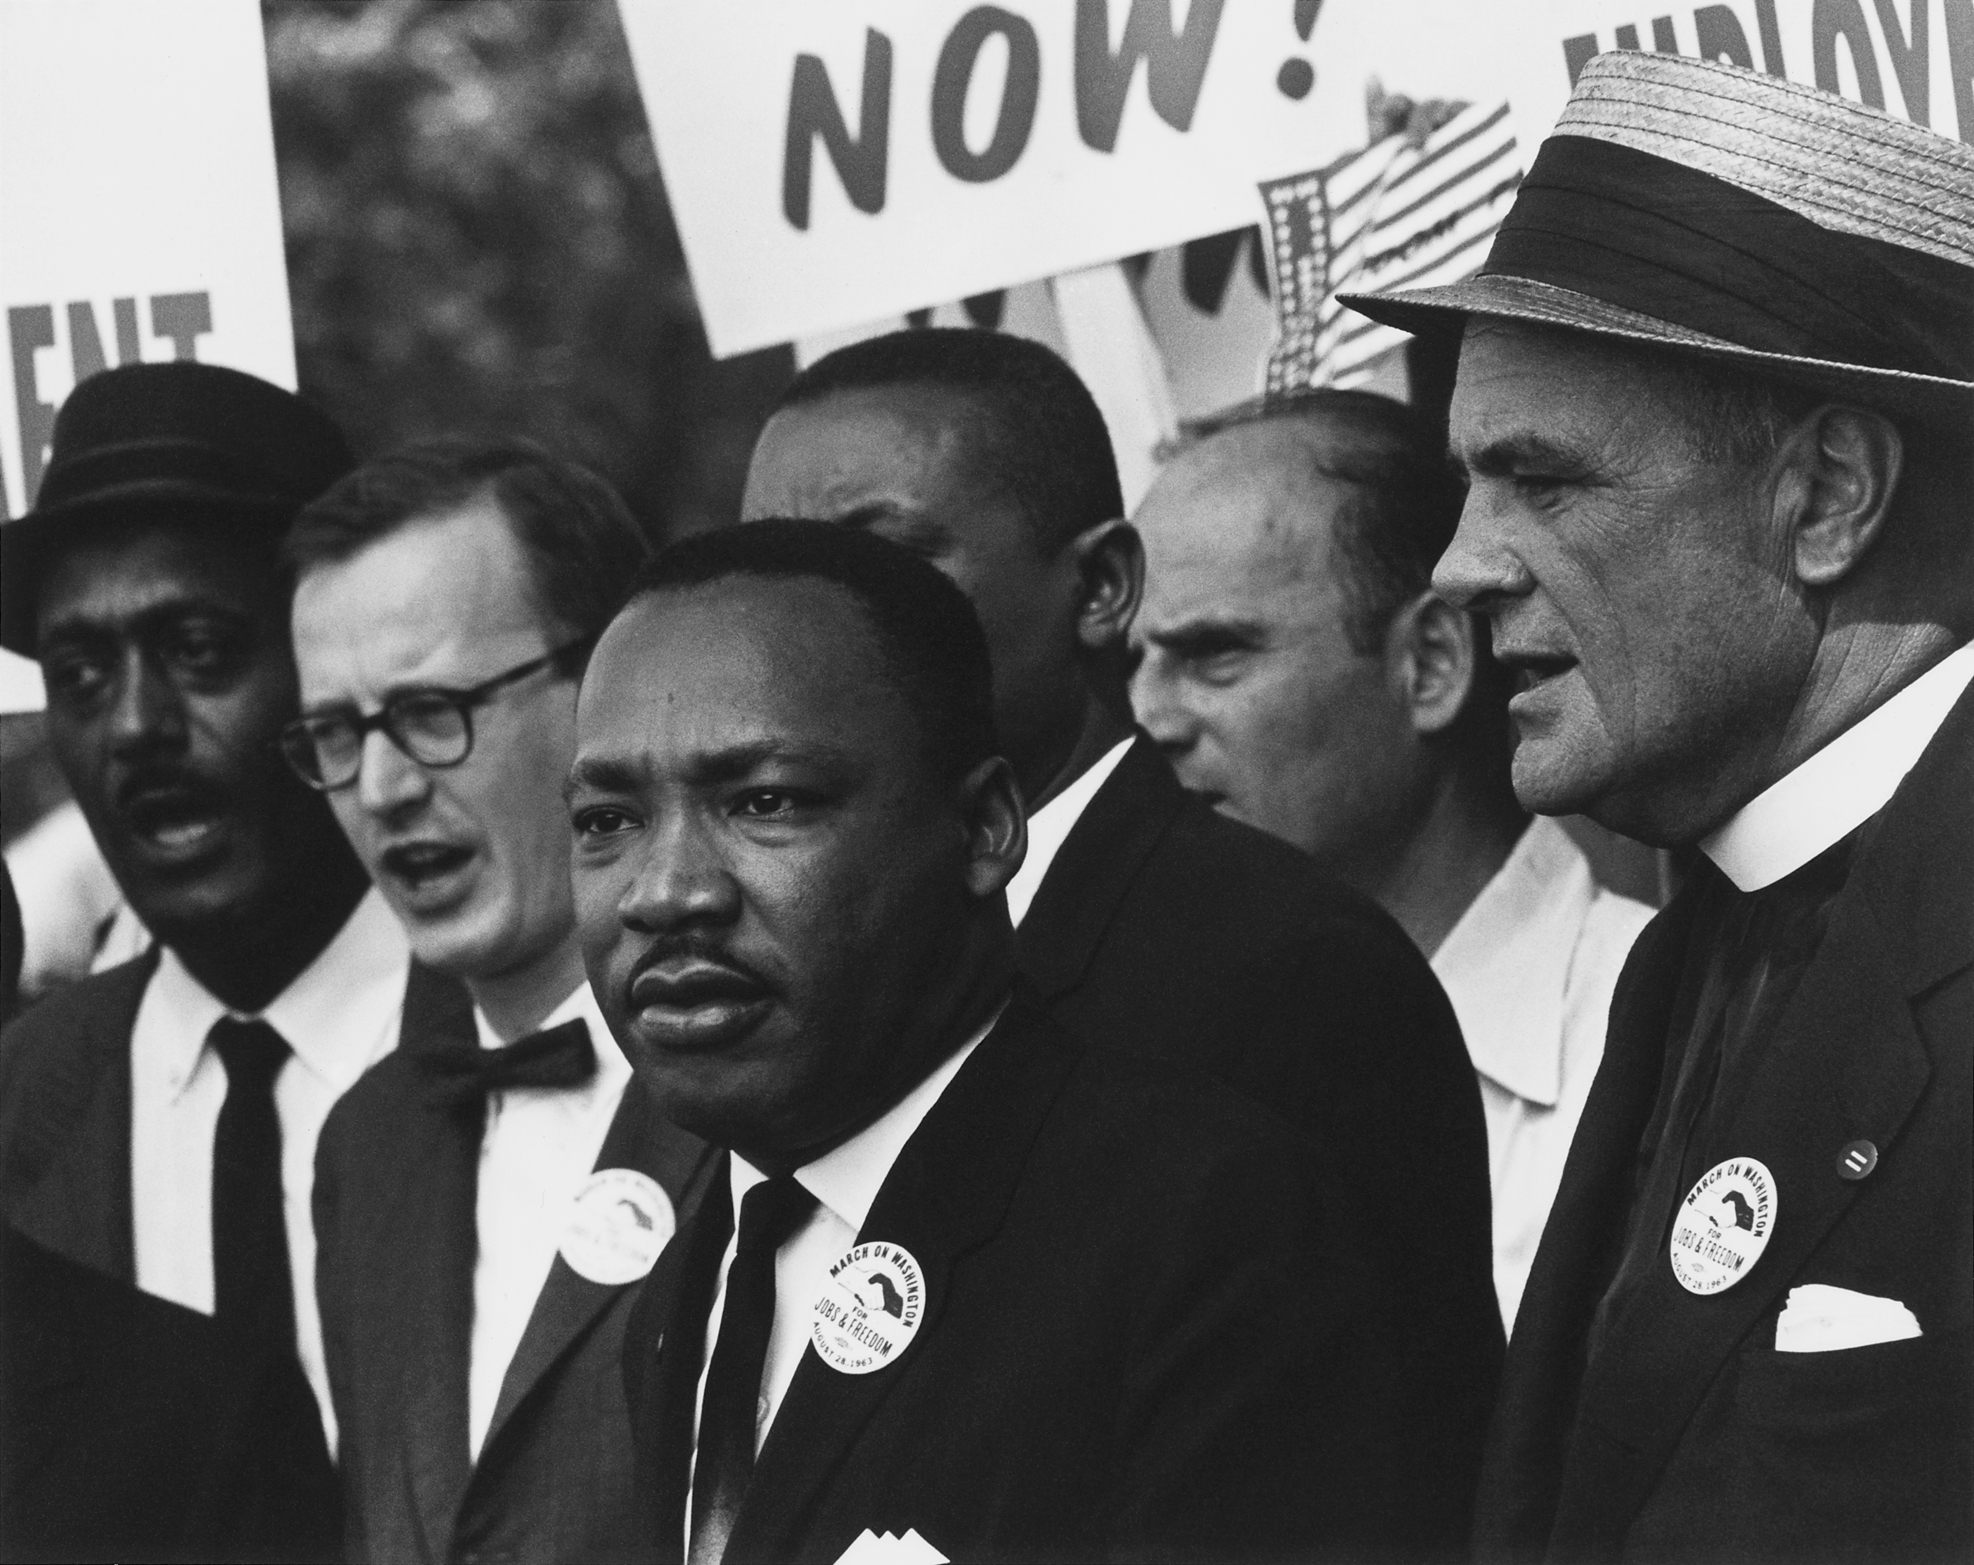 Martin Luther King Jr. at a civil rights march in Washington, D.C. in 1963.